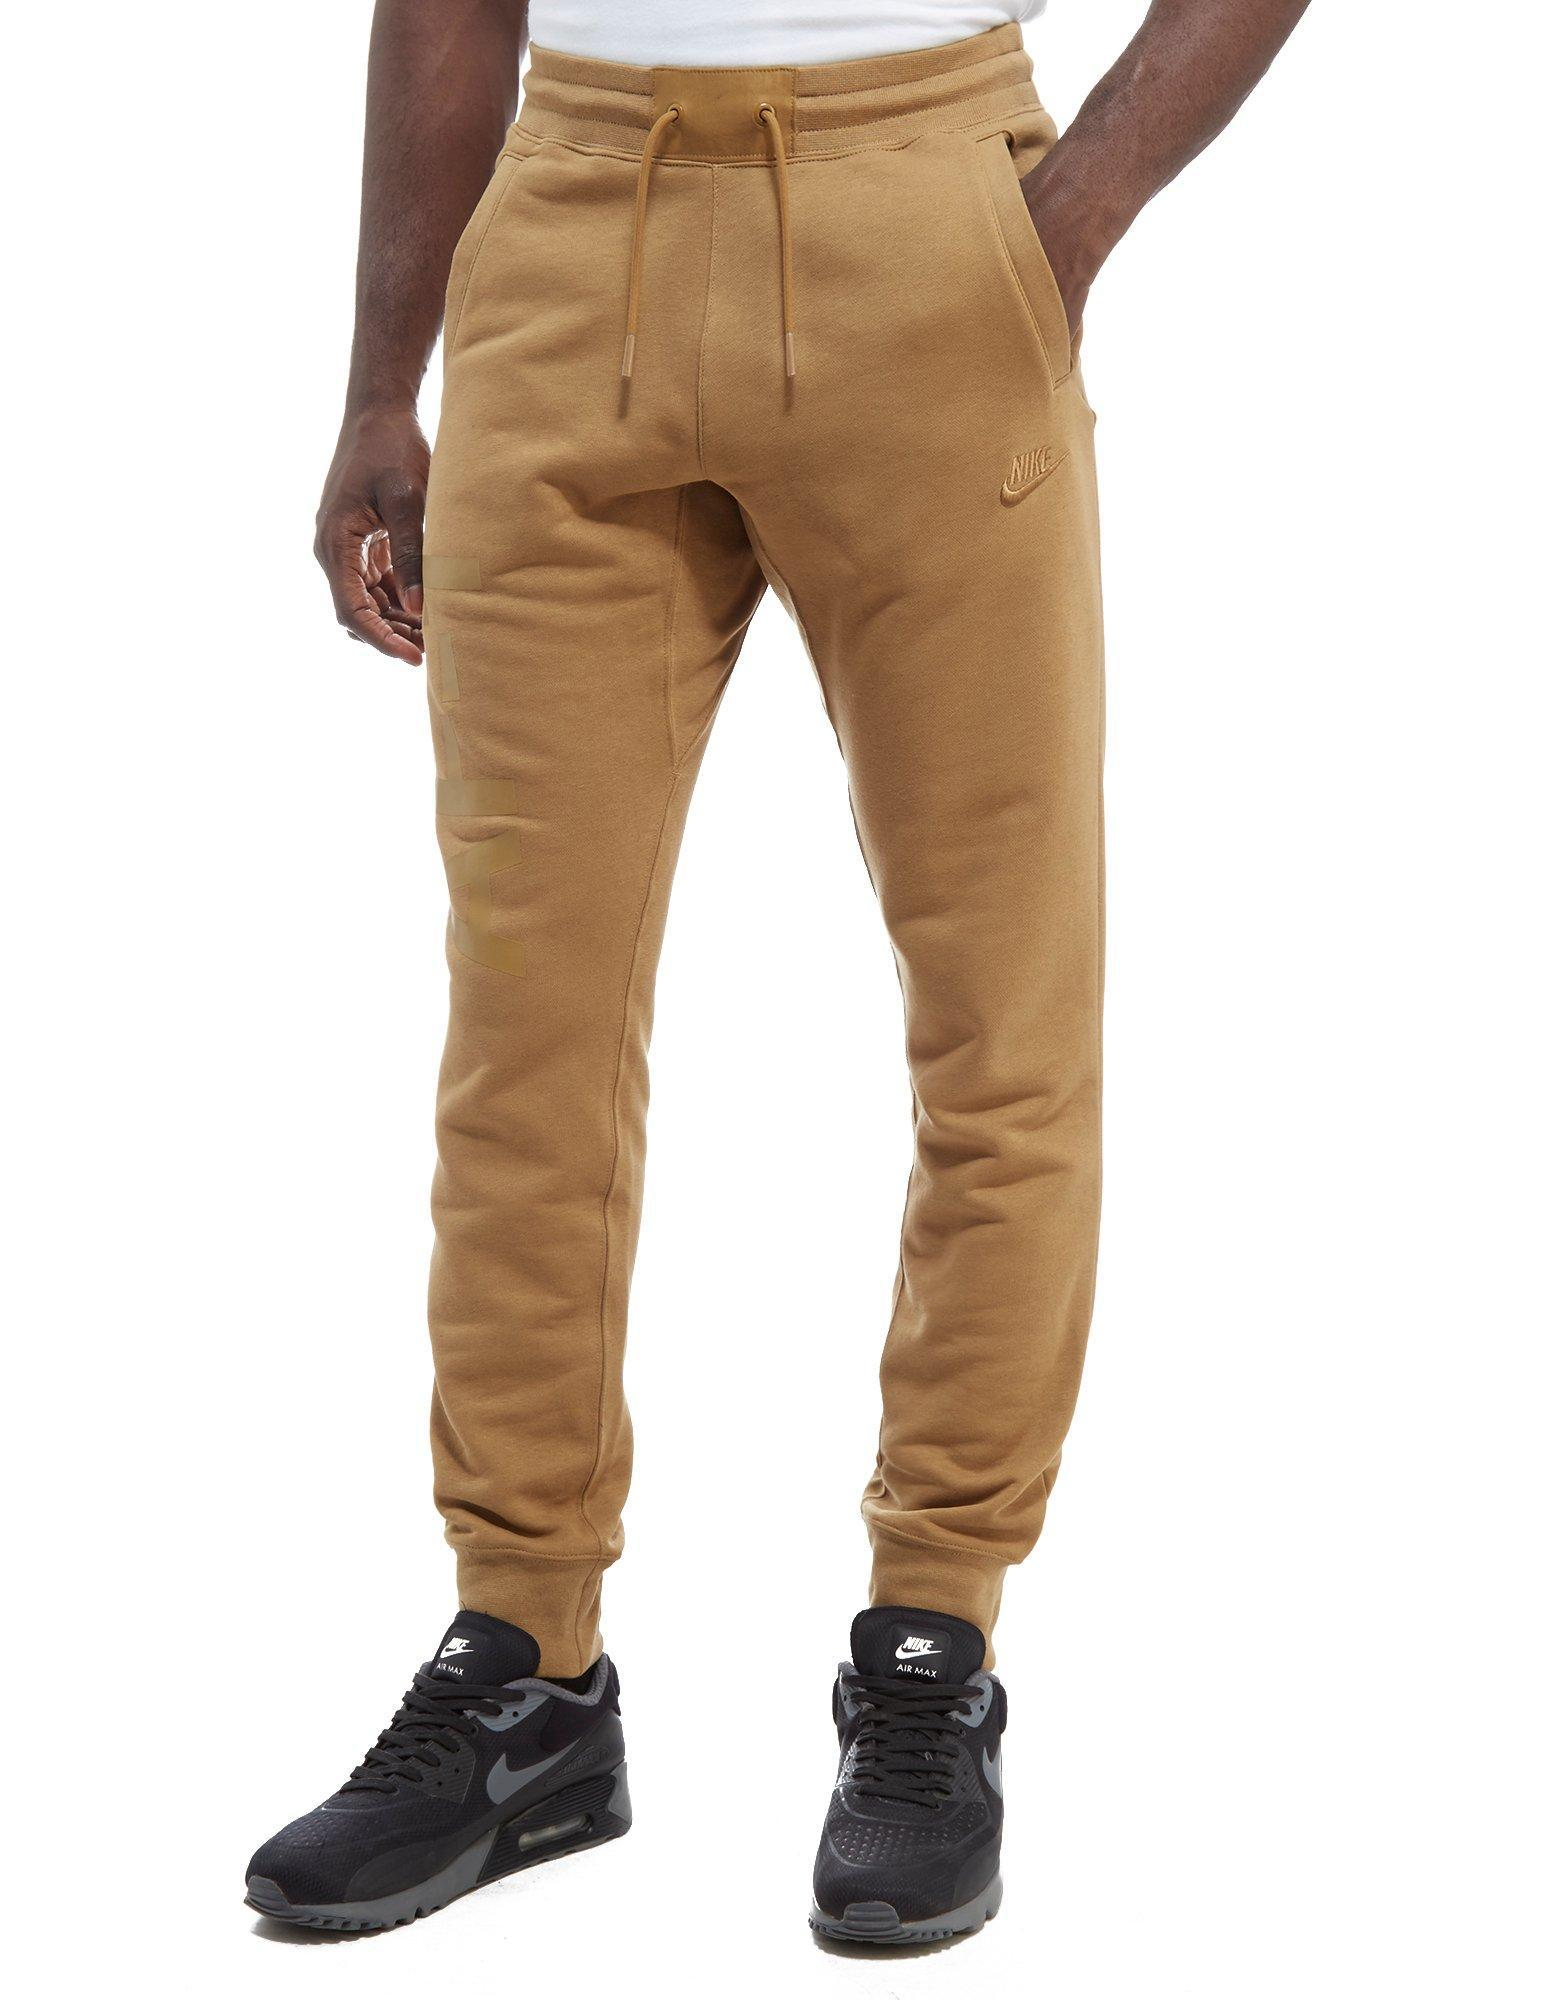 info for d3f2e 86336 Lyst - Nike Air Force One Joggers in Natural for Men